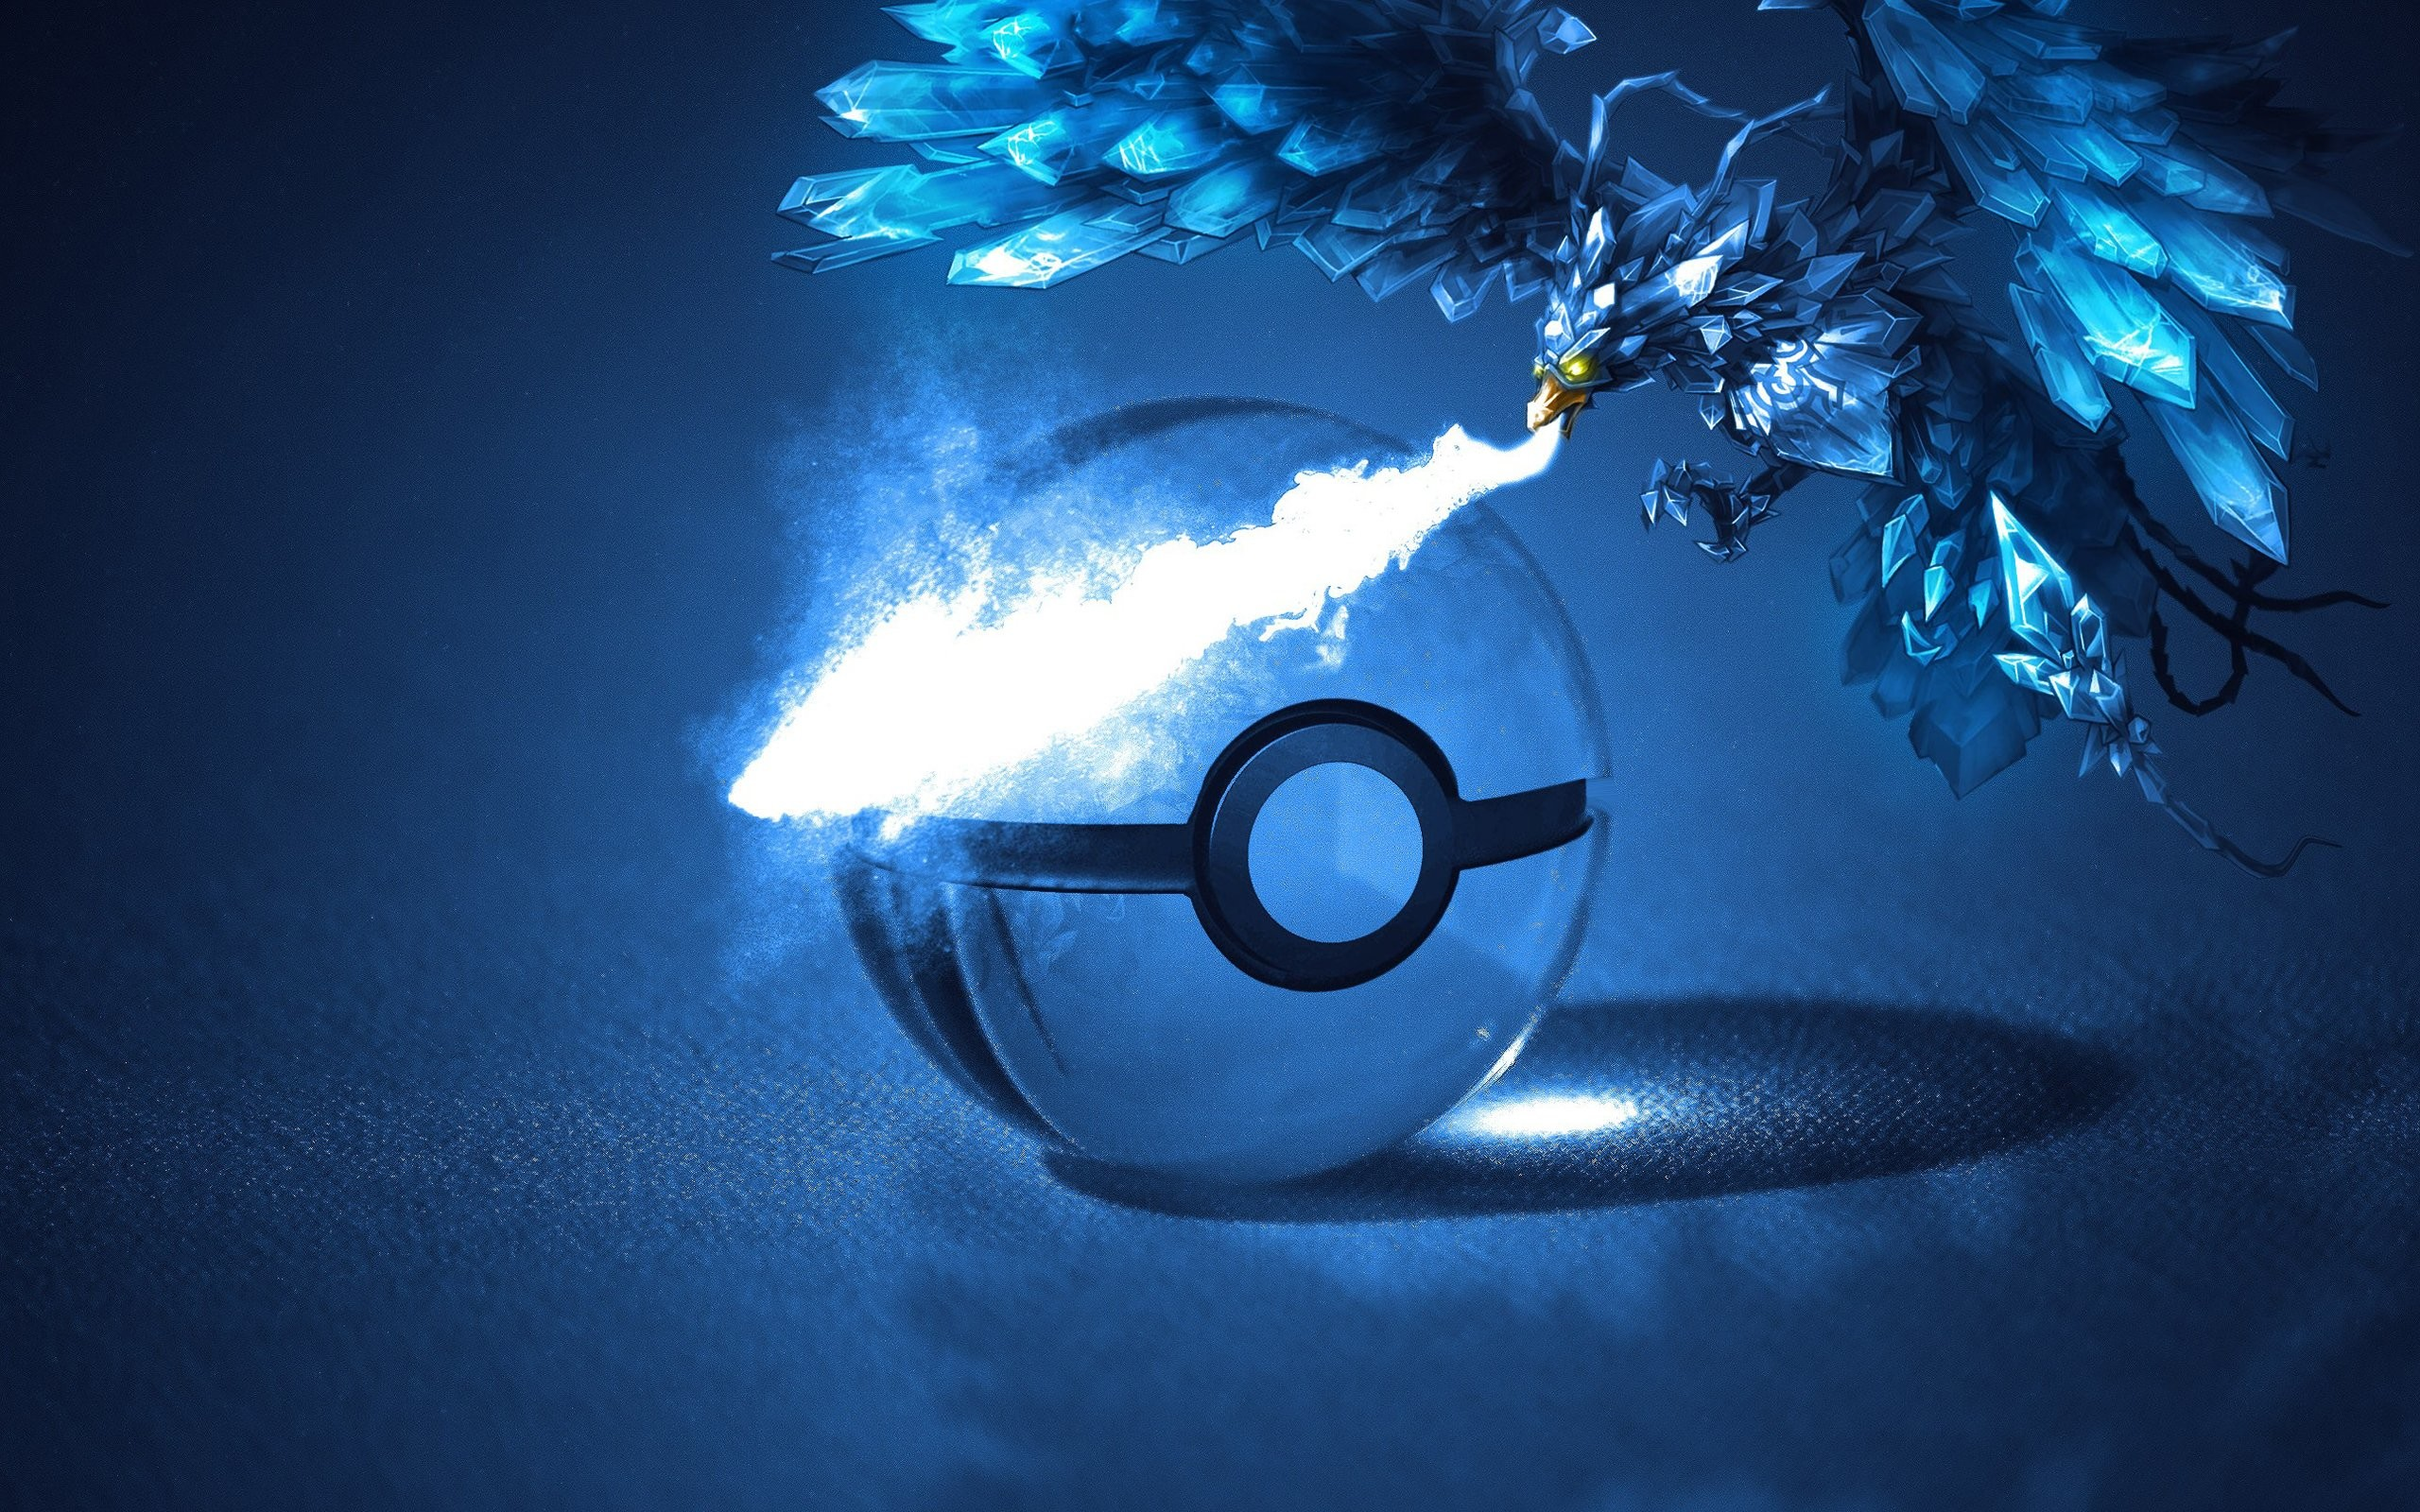 2560x1600 Articuno 565062. SHARE. TAGS: Images Background Christmas Pokemon